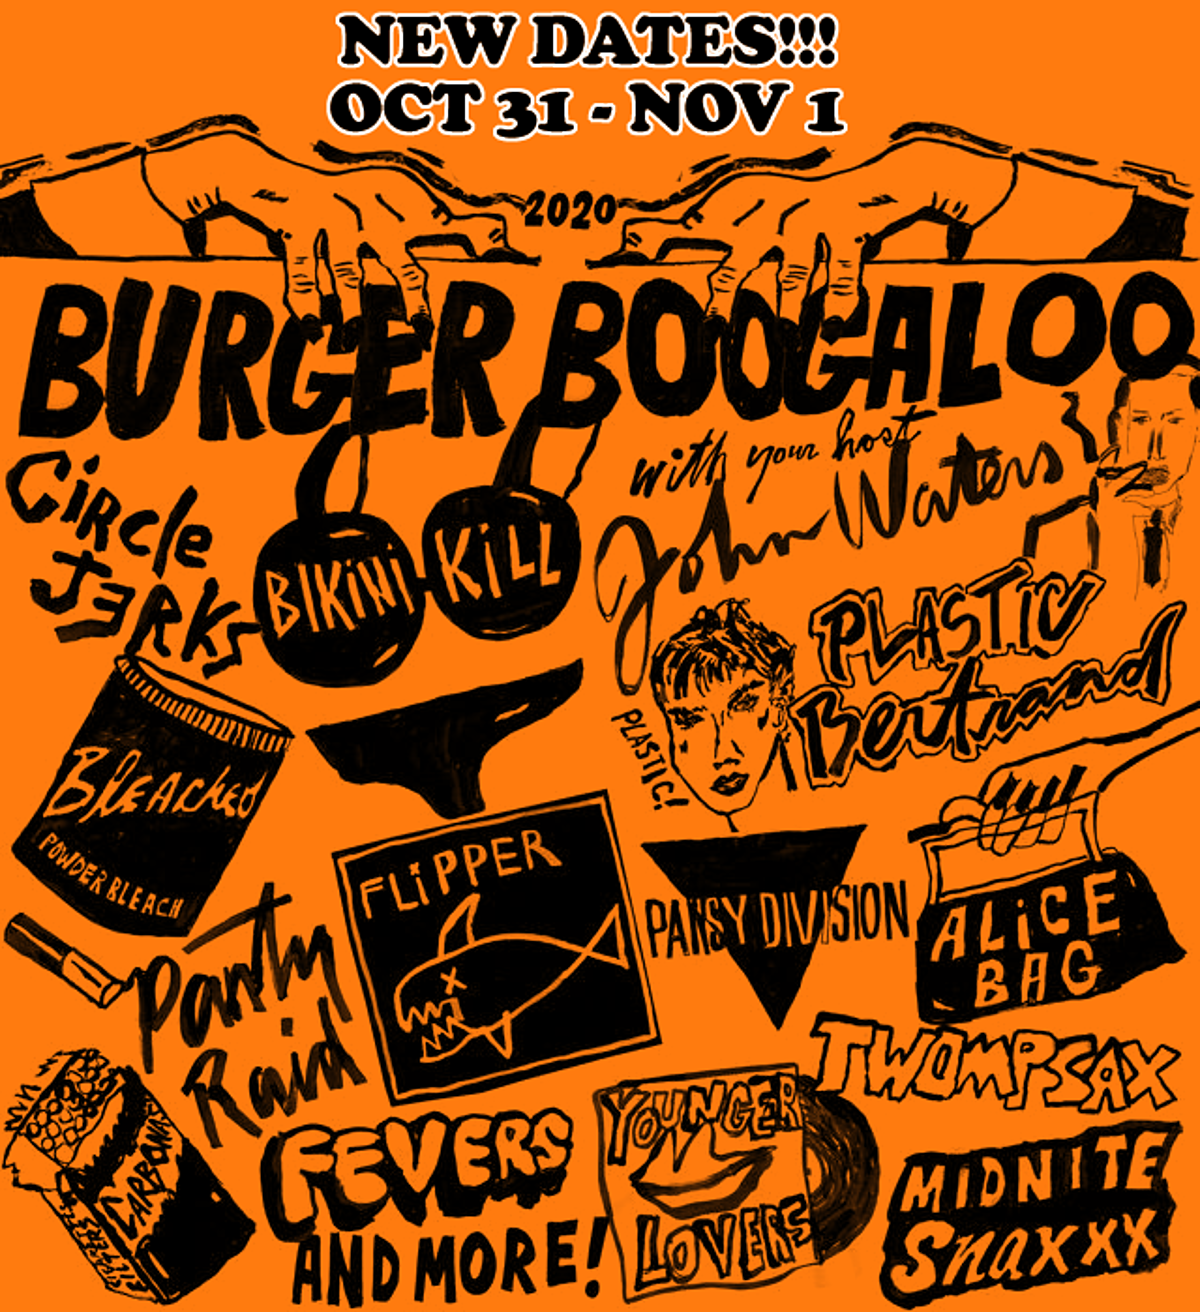 Halloween Nyc Nov 2 2020 Burger Boogaloo 2020 moving to Halloween Weekend